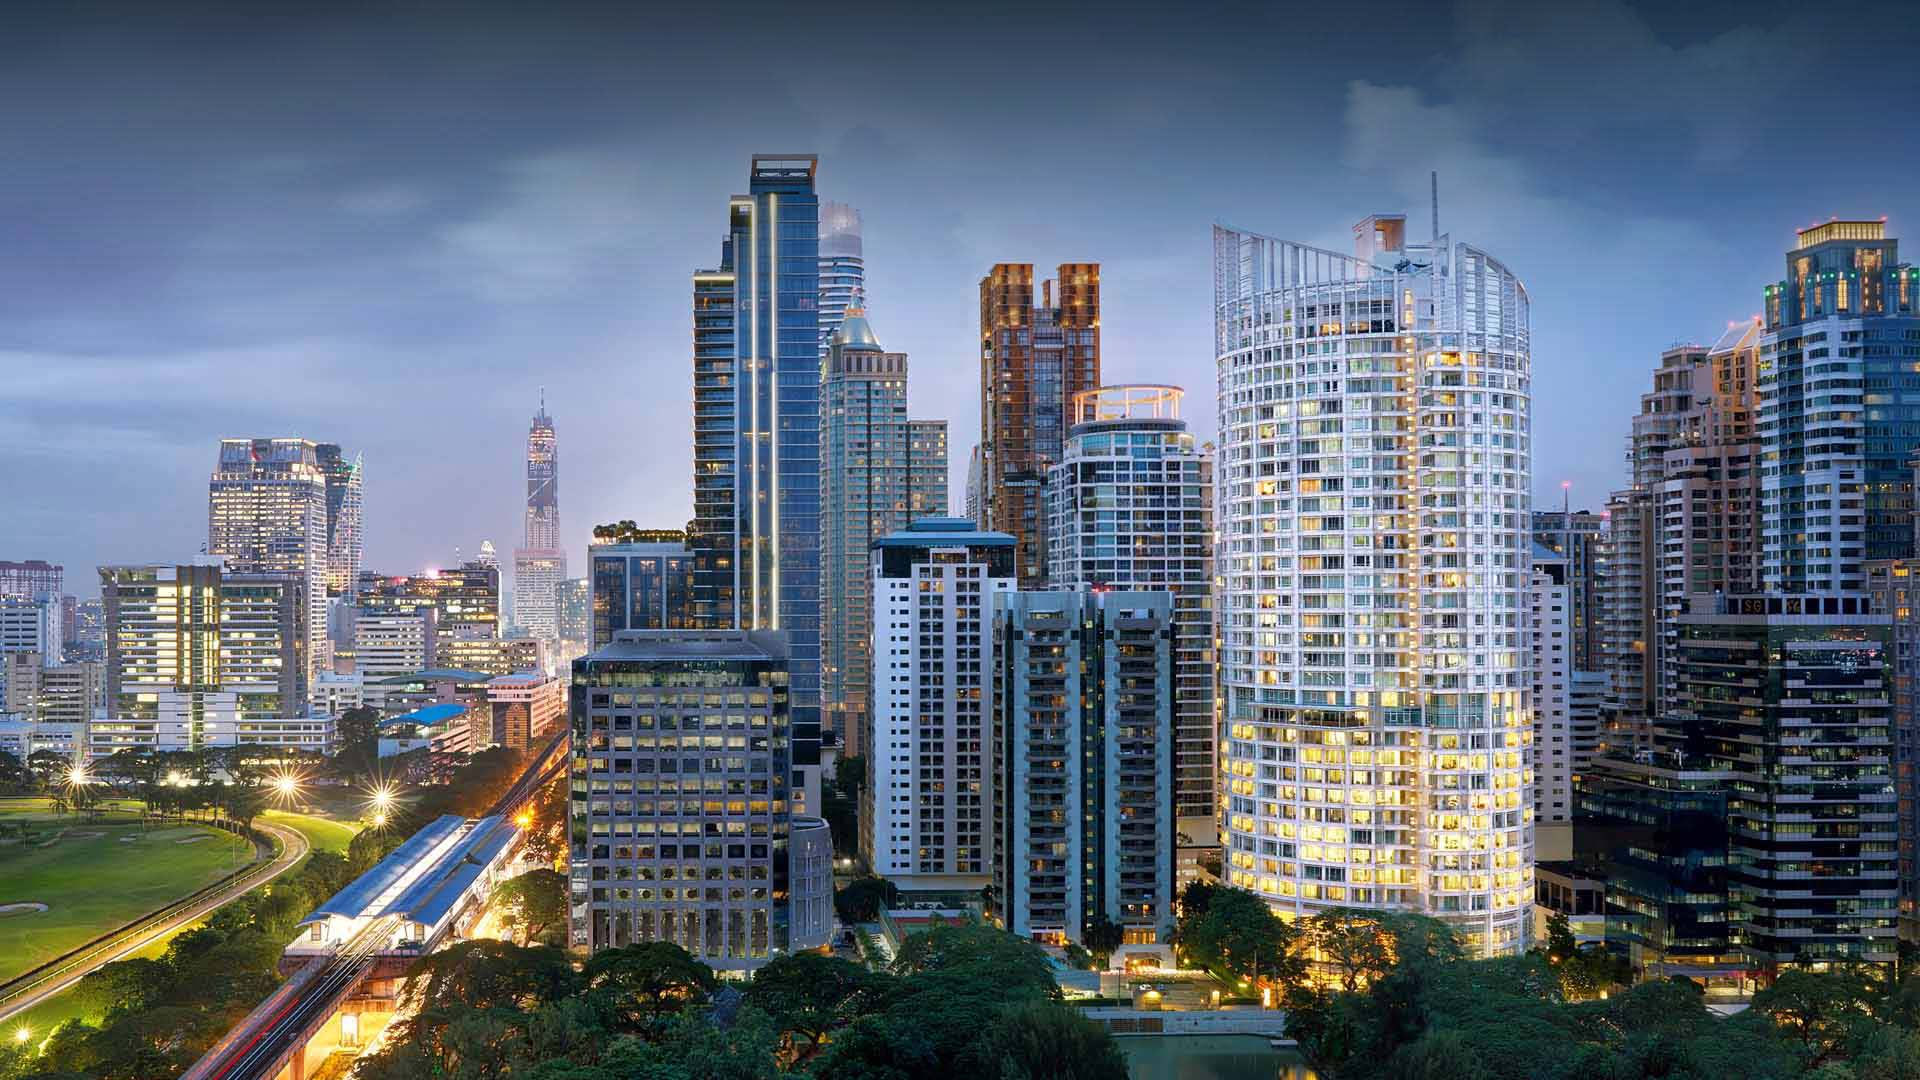 https://assets.anantara.com/image/upload/q_auto,f_auto/media/minor/anantara/images/anantara-baan-rajprasong-bangkok-serviced-suites/the-resort/anantara_baan_rajprasong_exterior_header_1920x1080.jpg